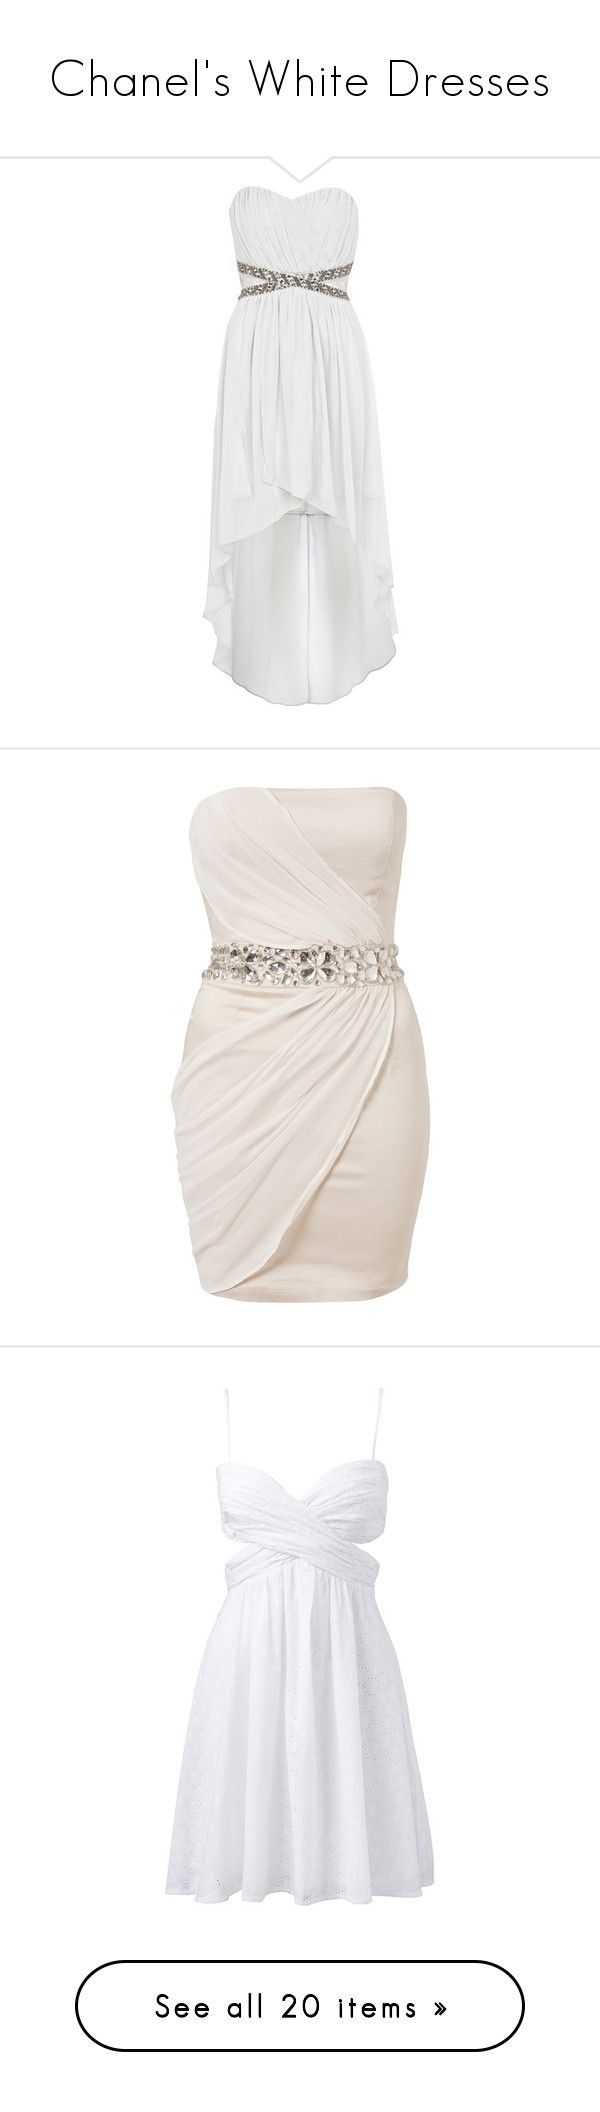 """Chanel's White Dresses"" by repressed-yeemo-anons ❤ liked on Polyvore featuring dresses, vestidos, robes, white dresses, white hi low dress, holiday cocktail dresses, party dresses, metallic cocktail dress, white high low dress and short dresses"